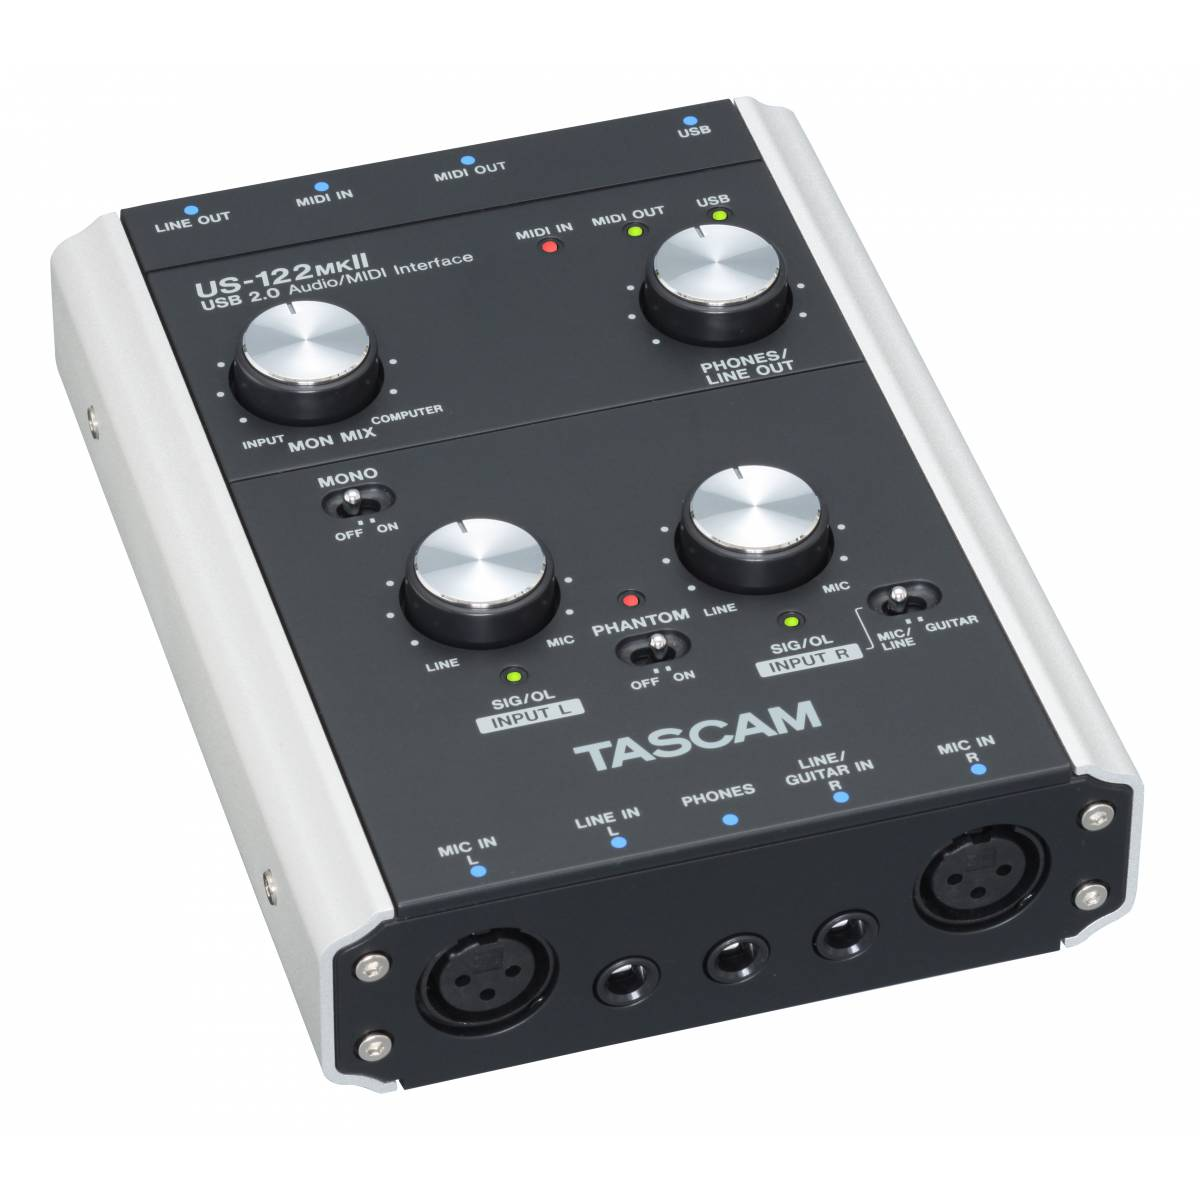 tascam us 122 mkii usb 2 0 audio interface audio interfaces soundcards from inta audio uk. Black Bedroom Furniture Sets. Home Design Ideas